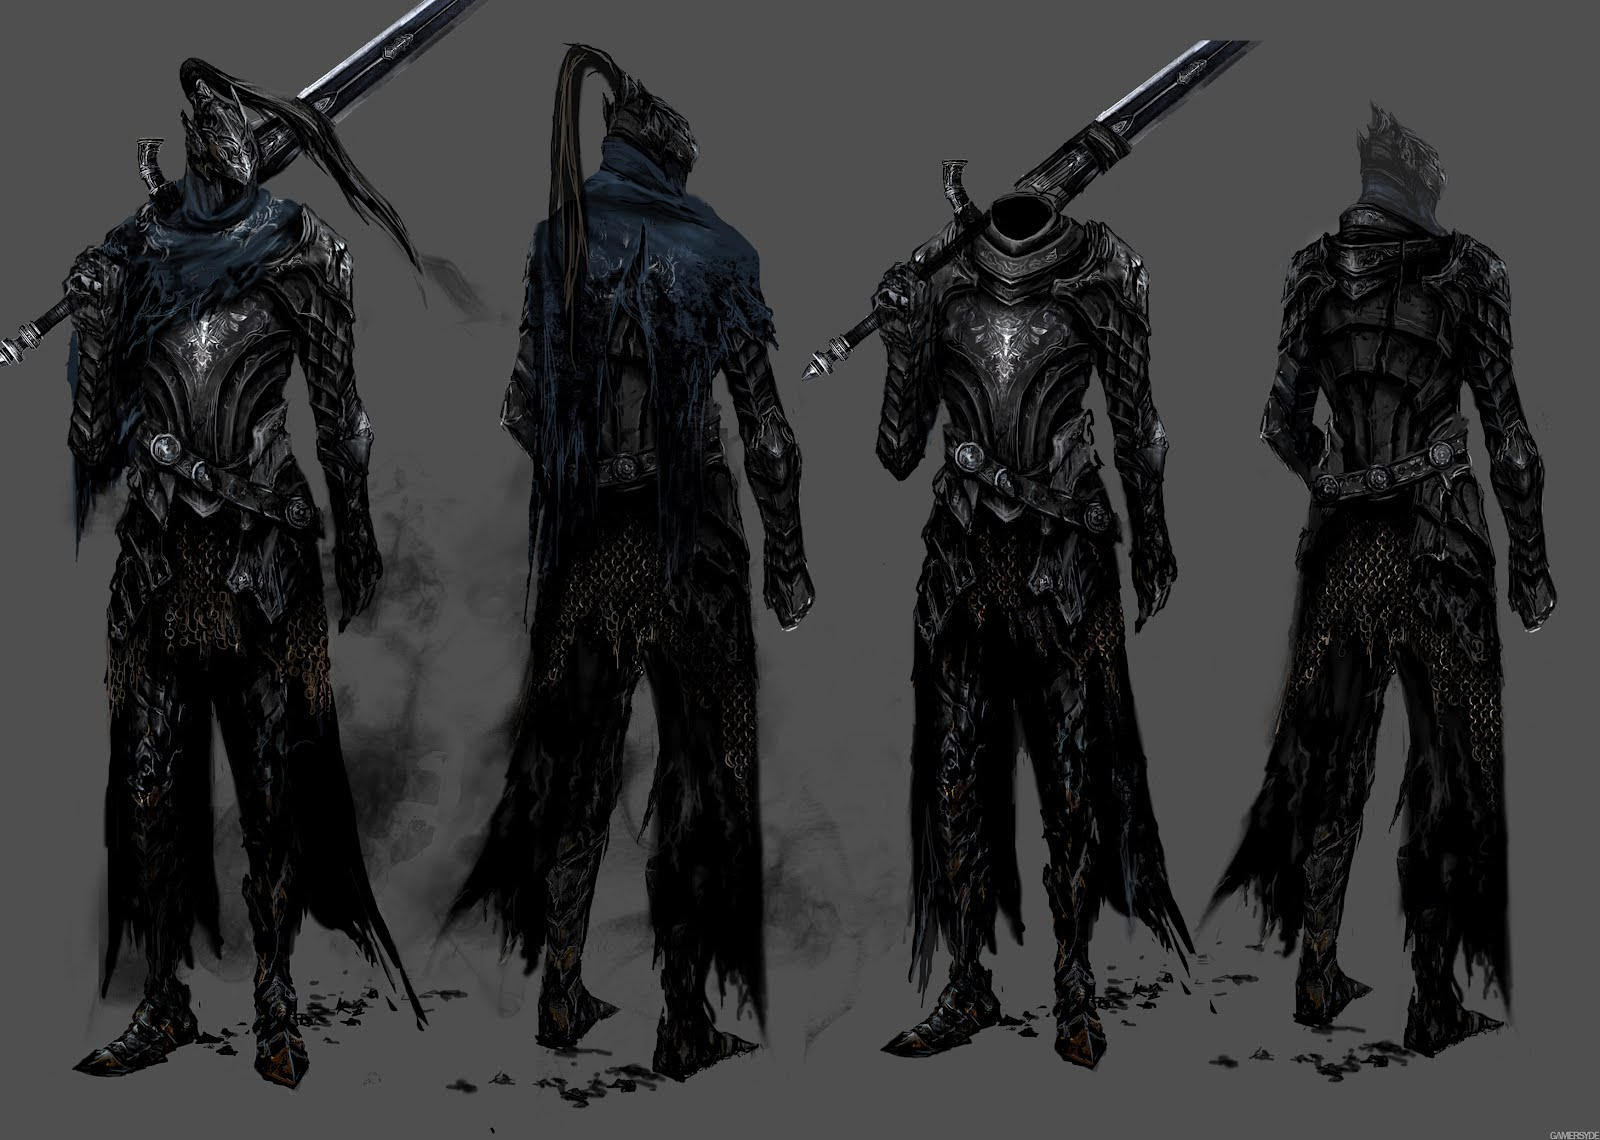 He hides behind a hideous mask or disguised which looks like a skeleton mixed with a face Drawing Corvo Attano will be fun but challenging because I decided to make him as he is behind his mask If you have ever played Dishonored you already know how cool this character is Look for more lessons coming your way soon people